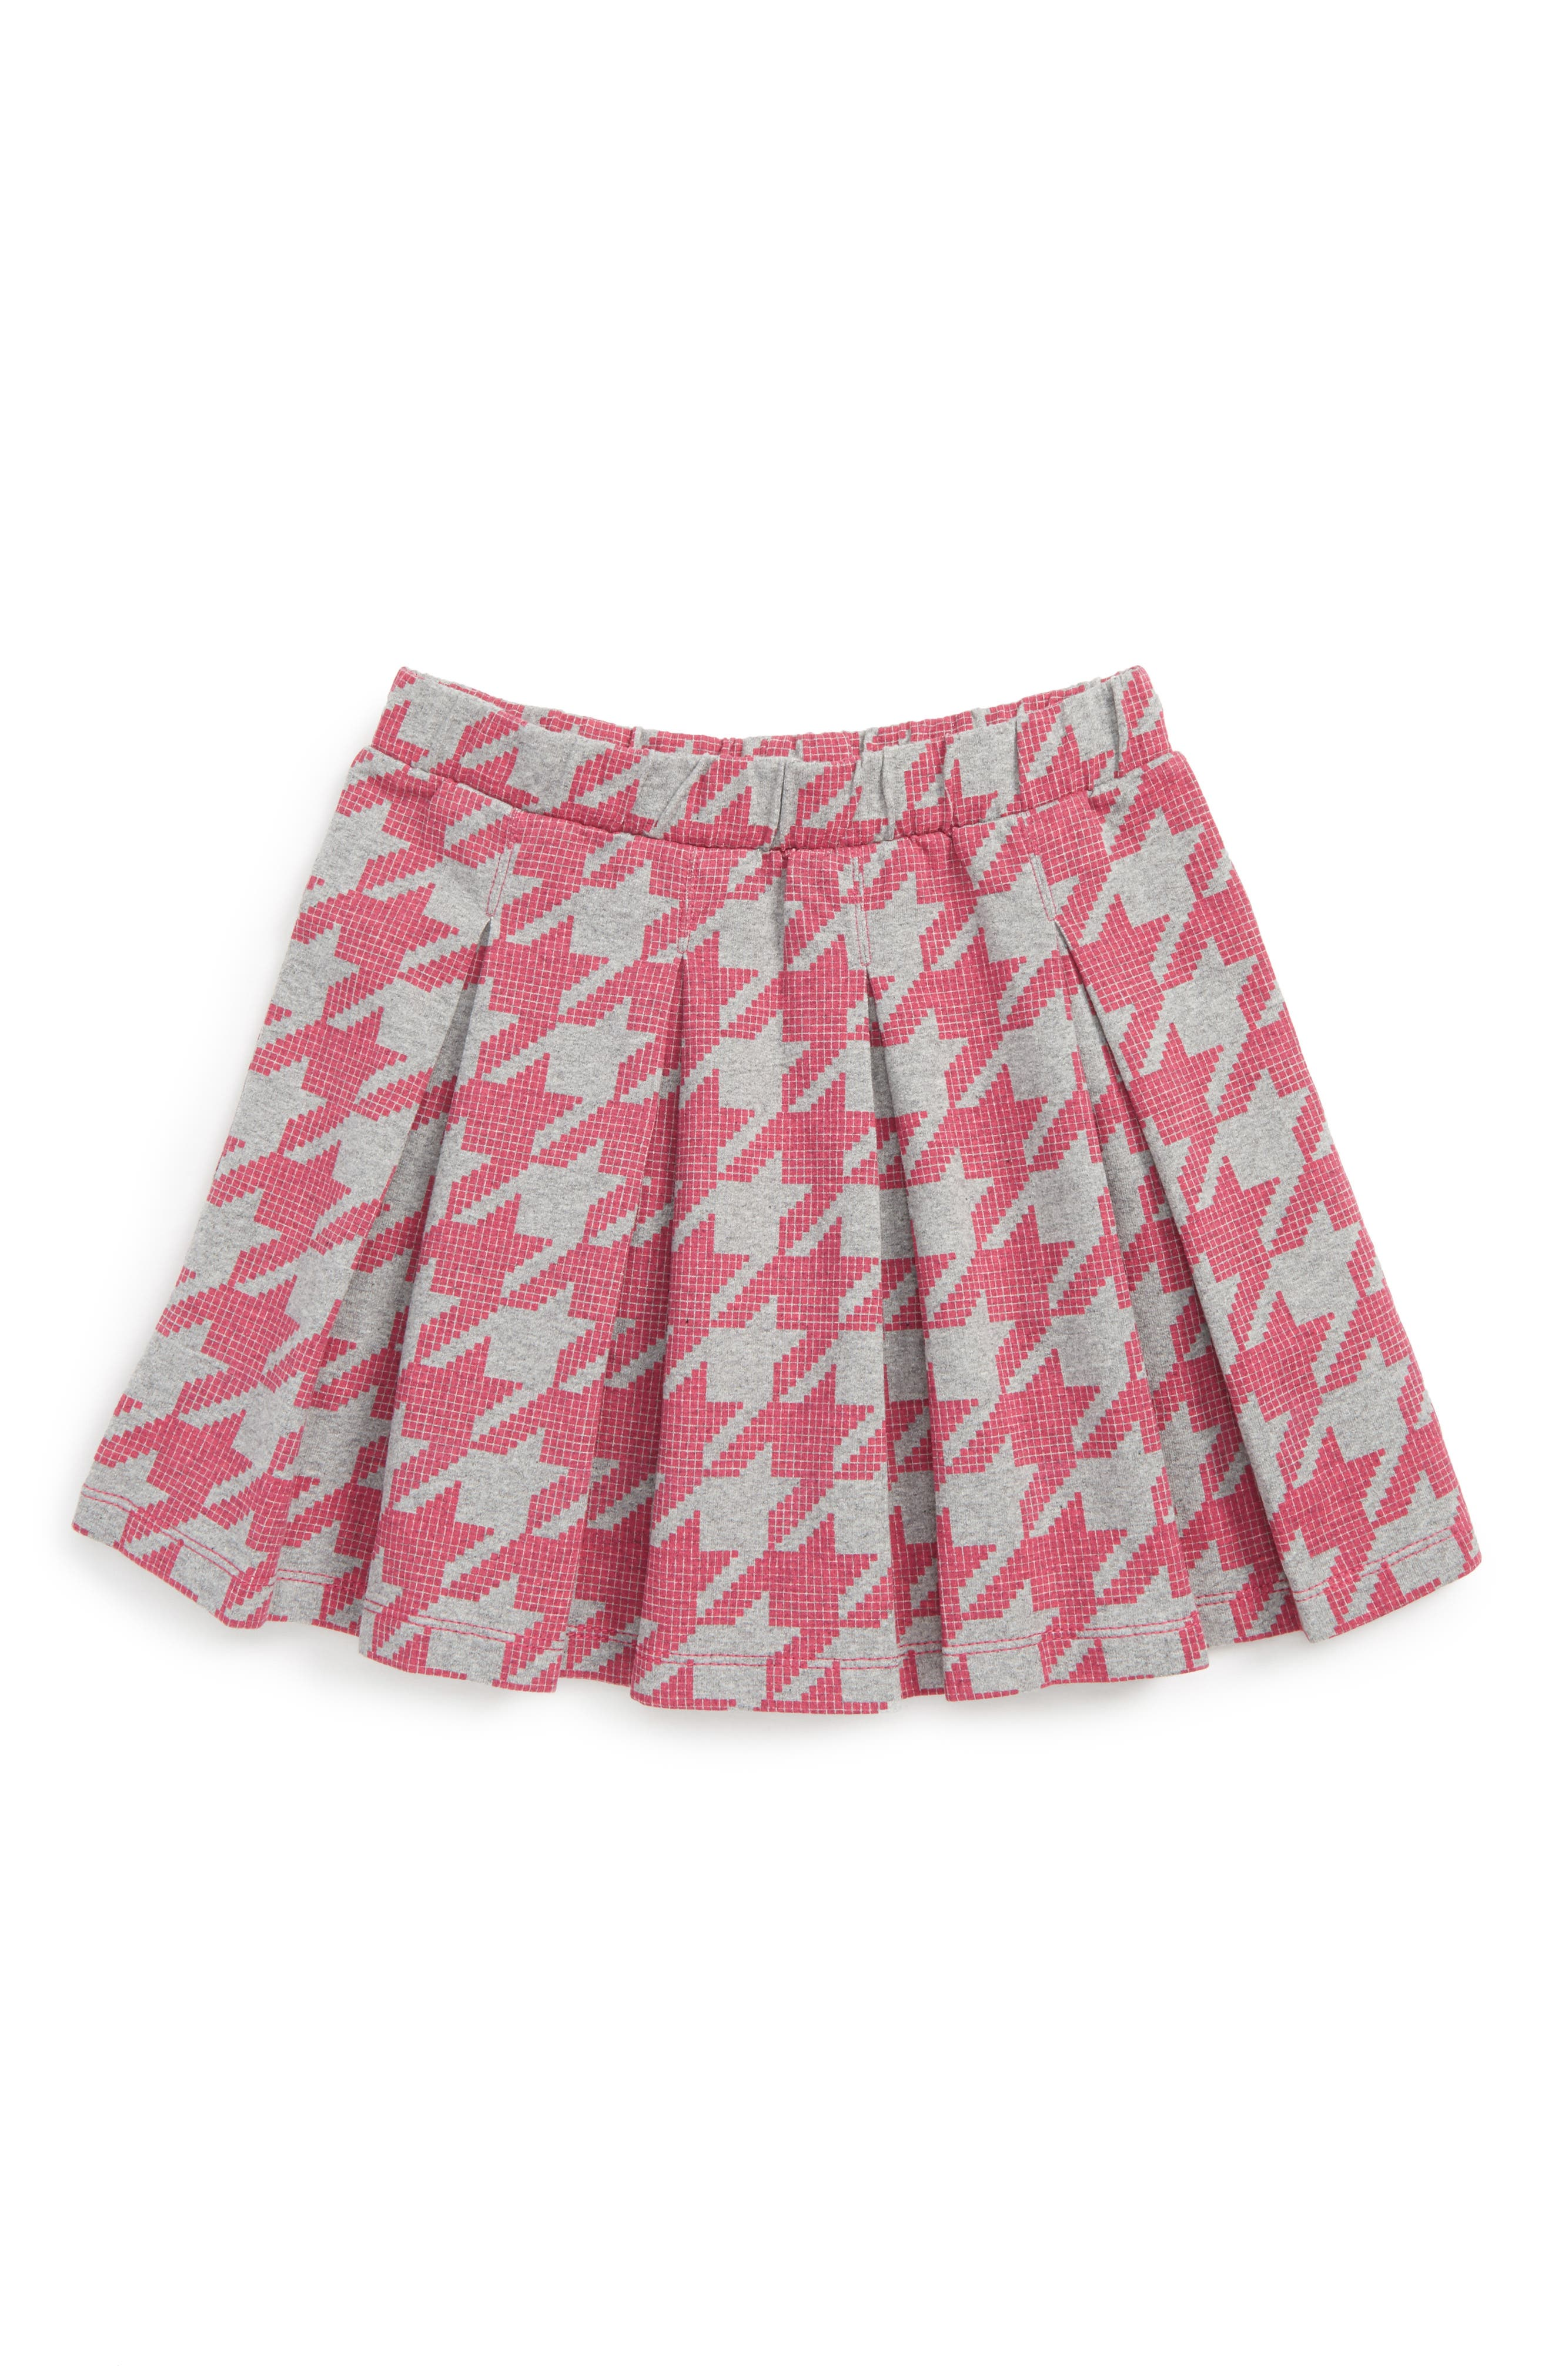 Houndstooth Skirt,                             Main thumbnail 1, color,                             Pink